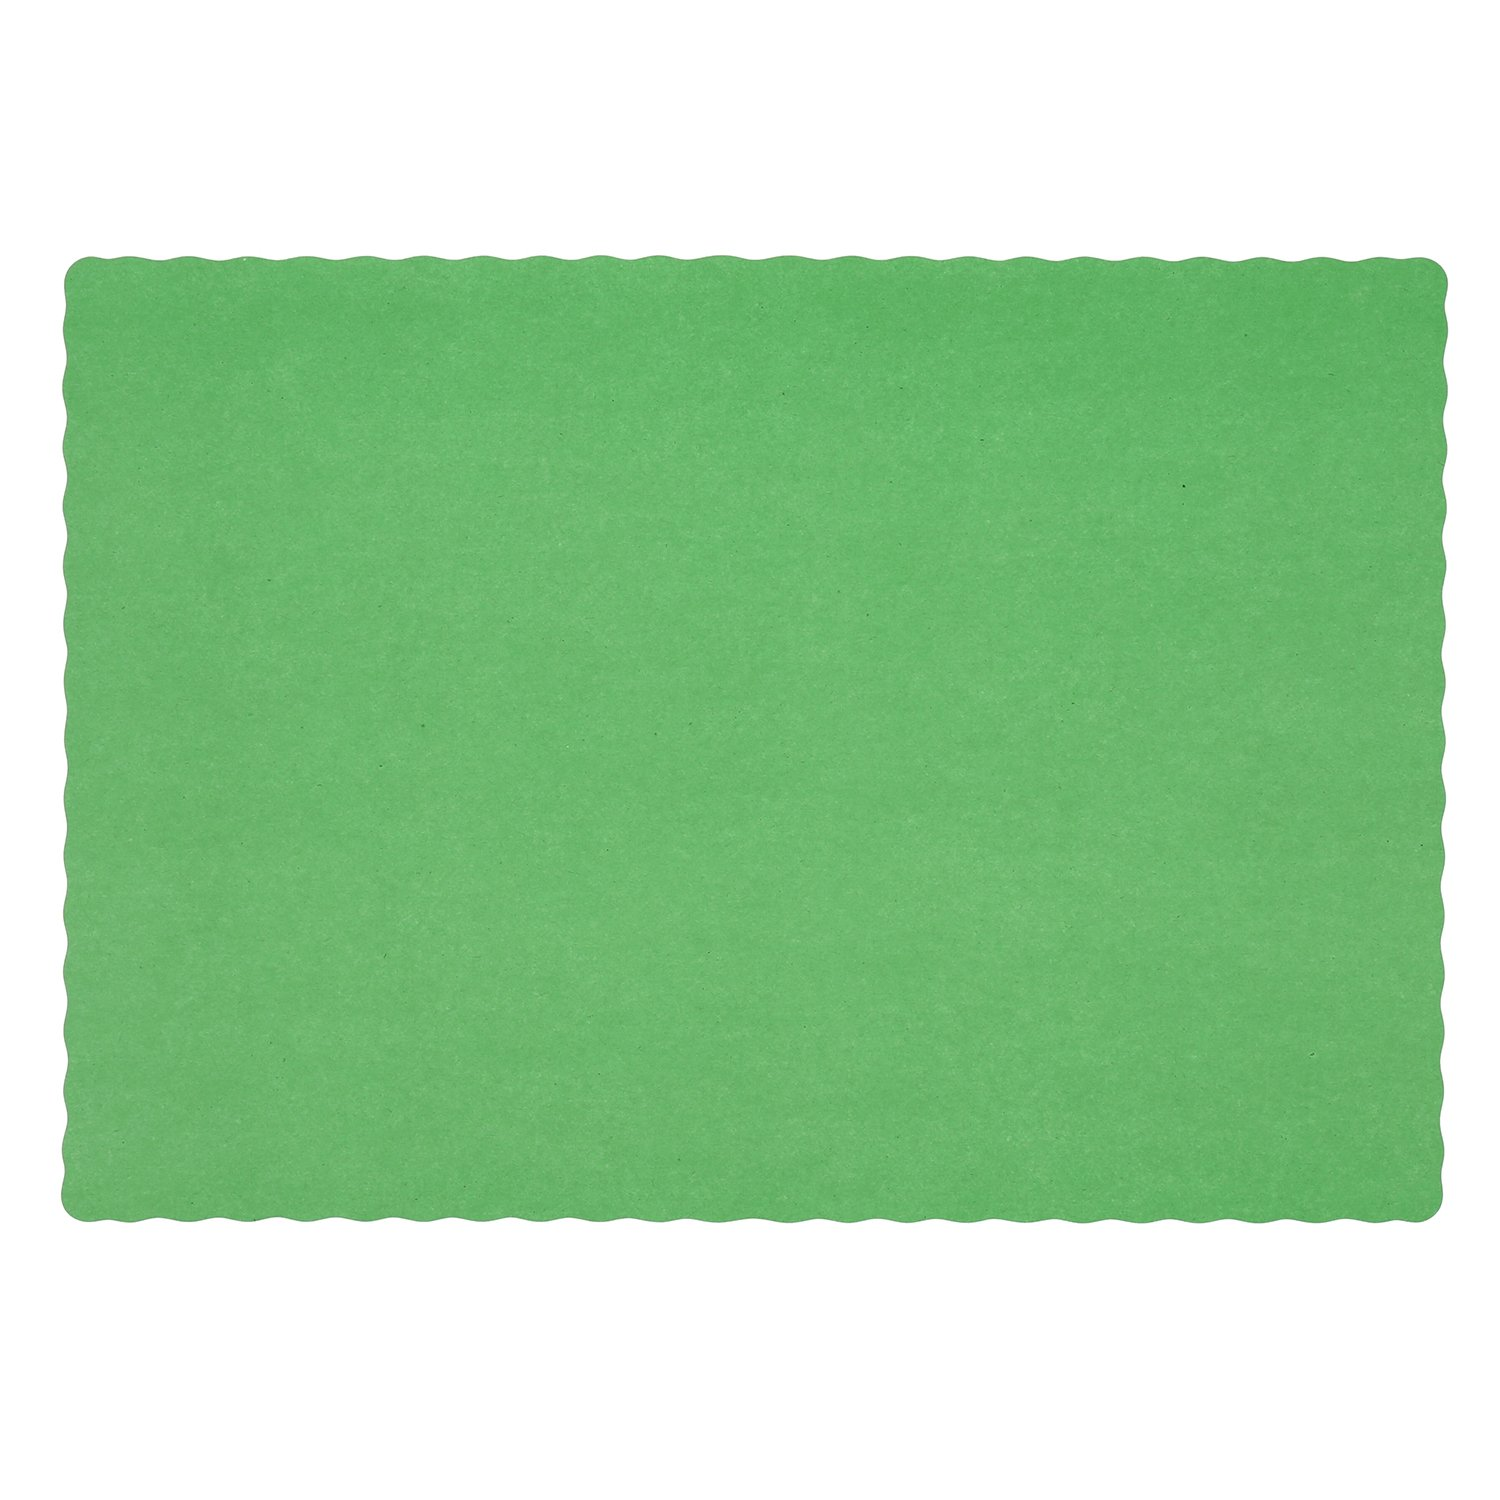 Royal Green Disposable Placemat 9.25'' x 13.25'', Package of 1000